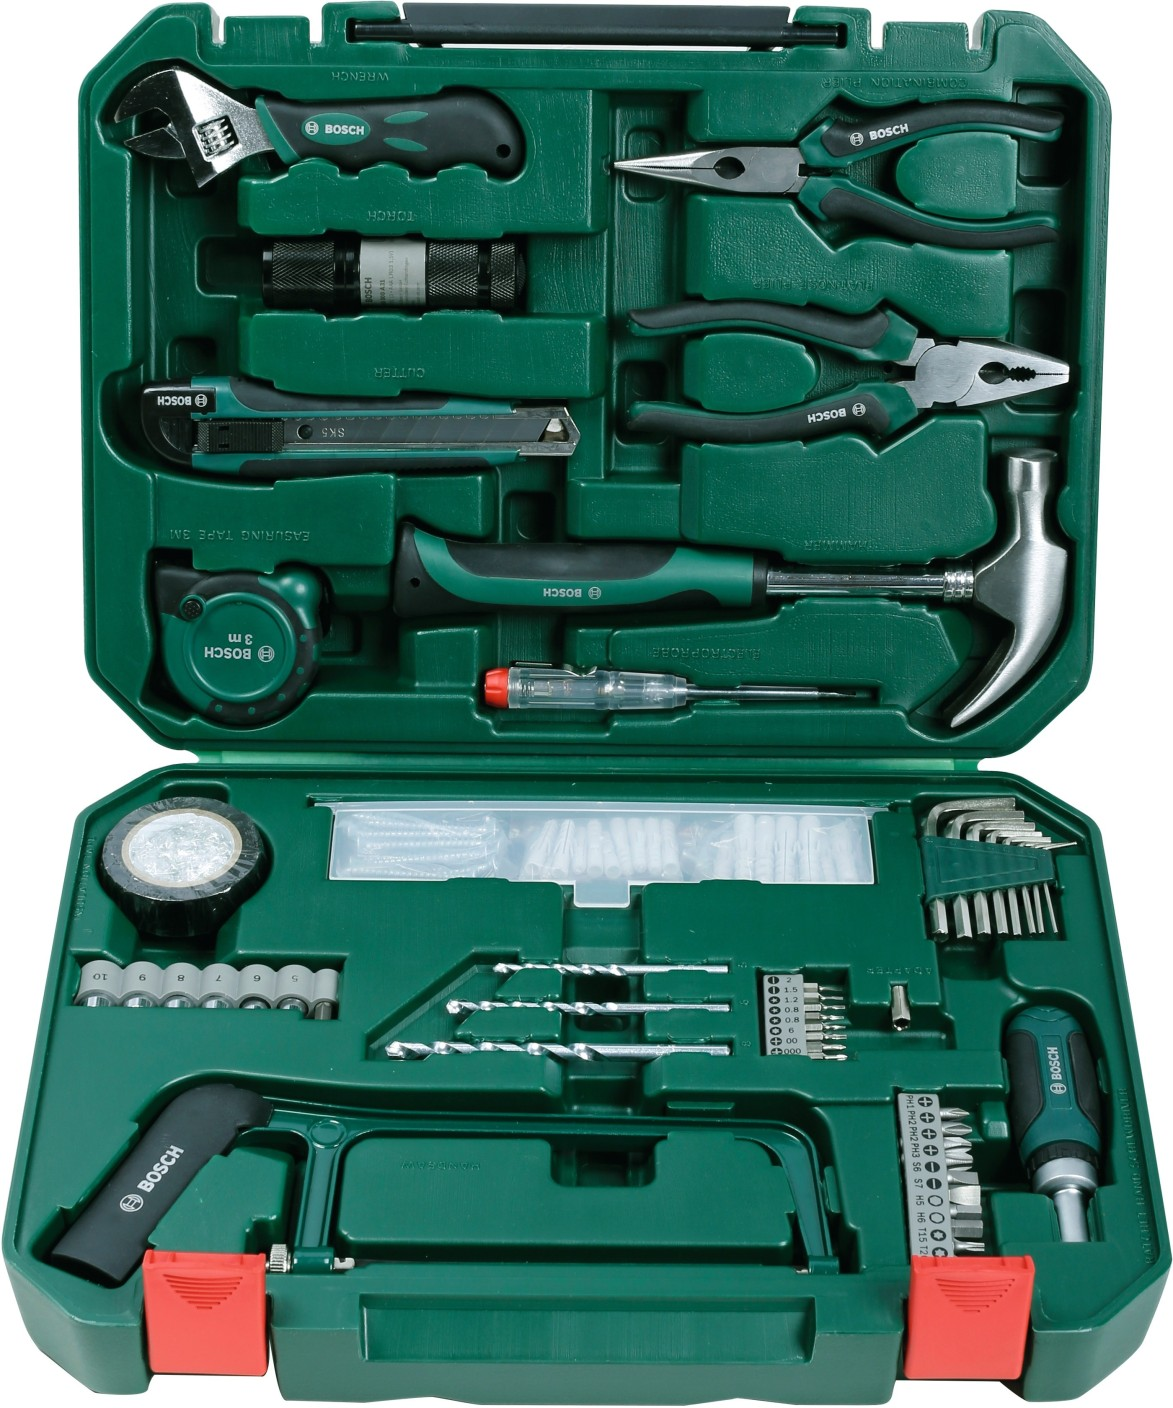 Bosch All-in-One Metal Hand Tool Kit Price in India - Buy ...